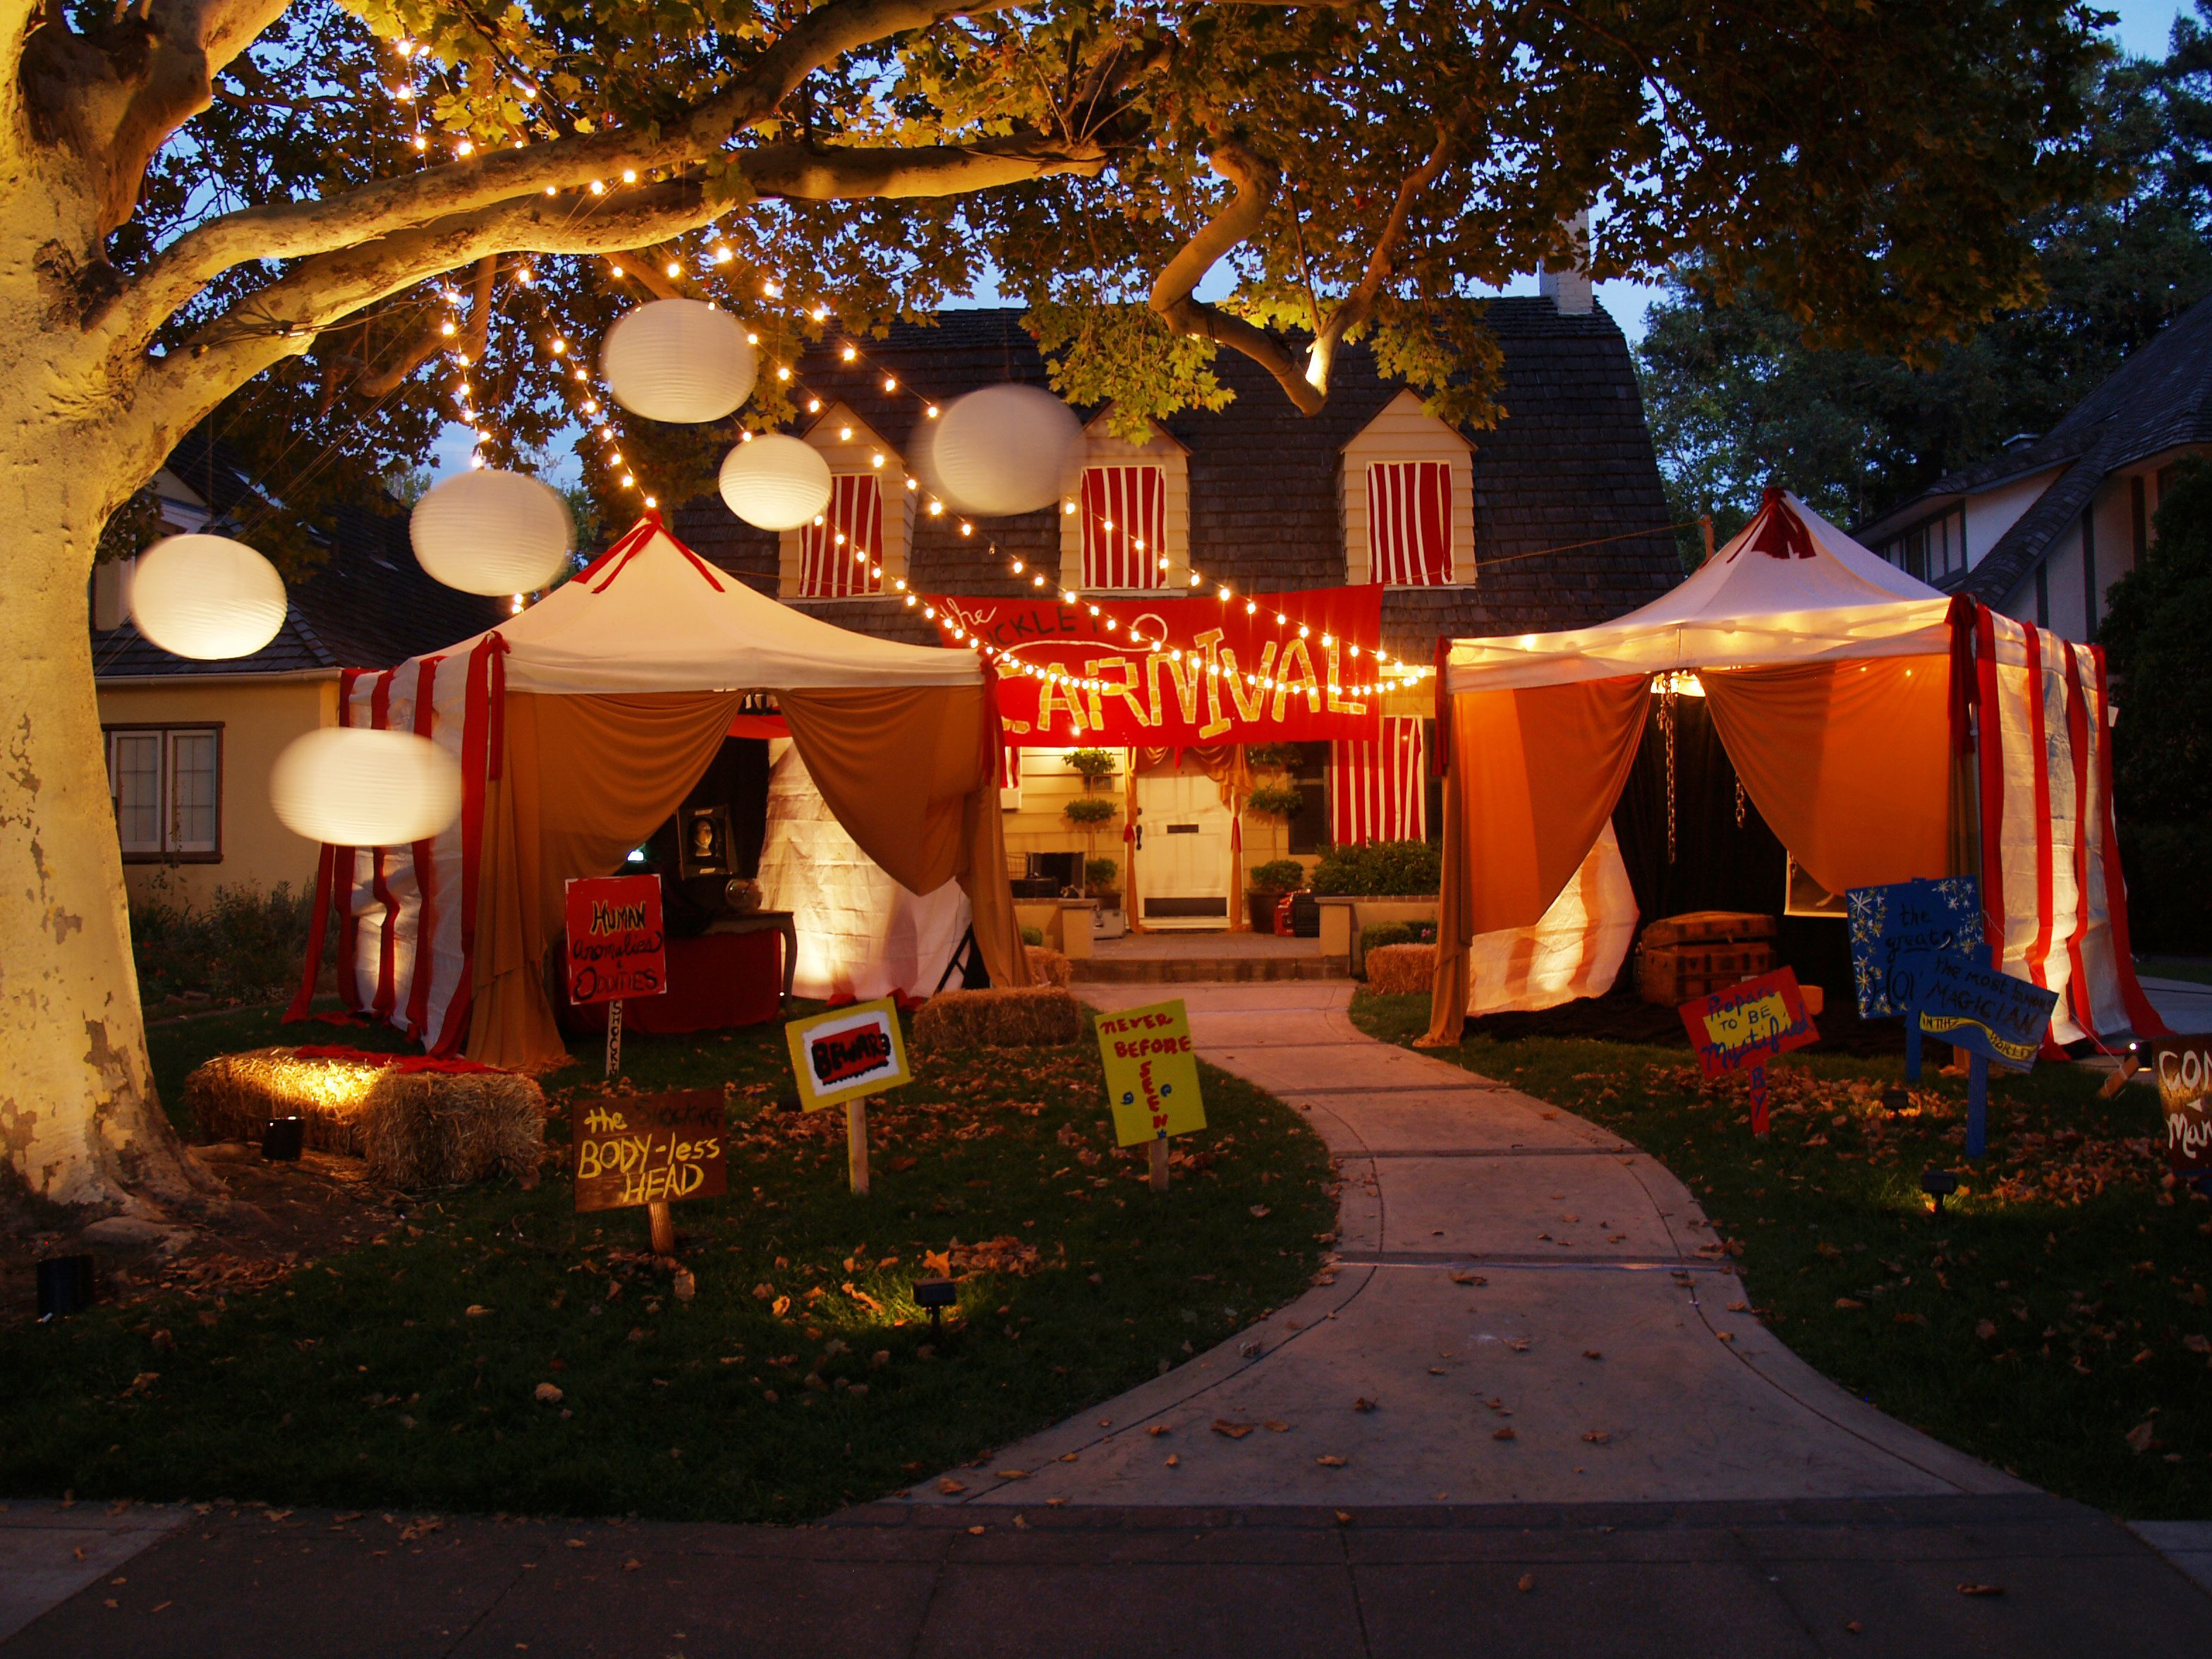 Carnival Halloween Theme.Creepy Carnival Tents For An Outdoor Halloween Theme Easy